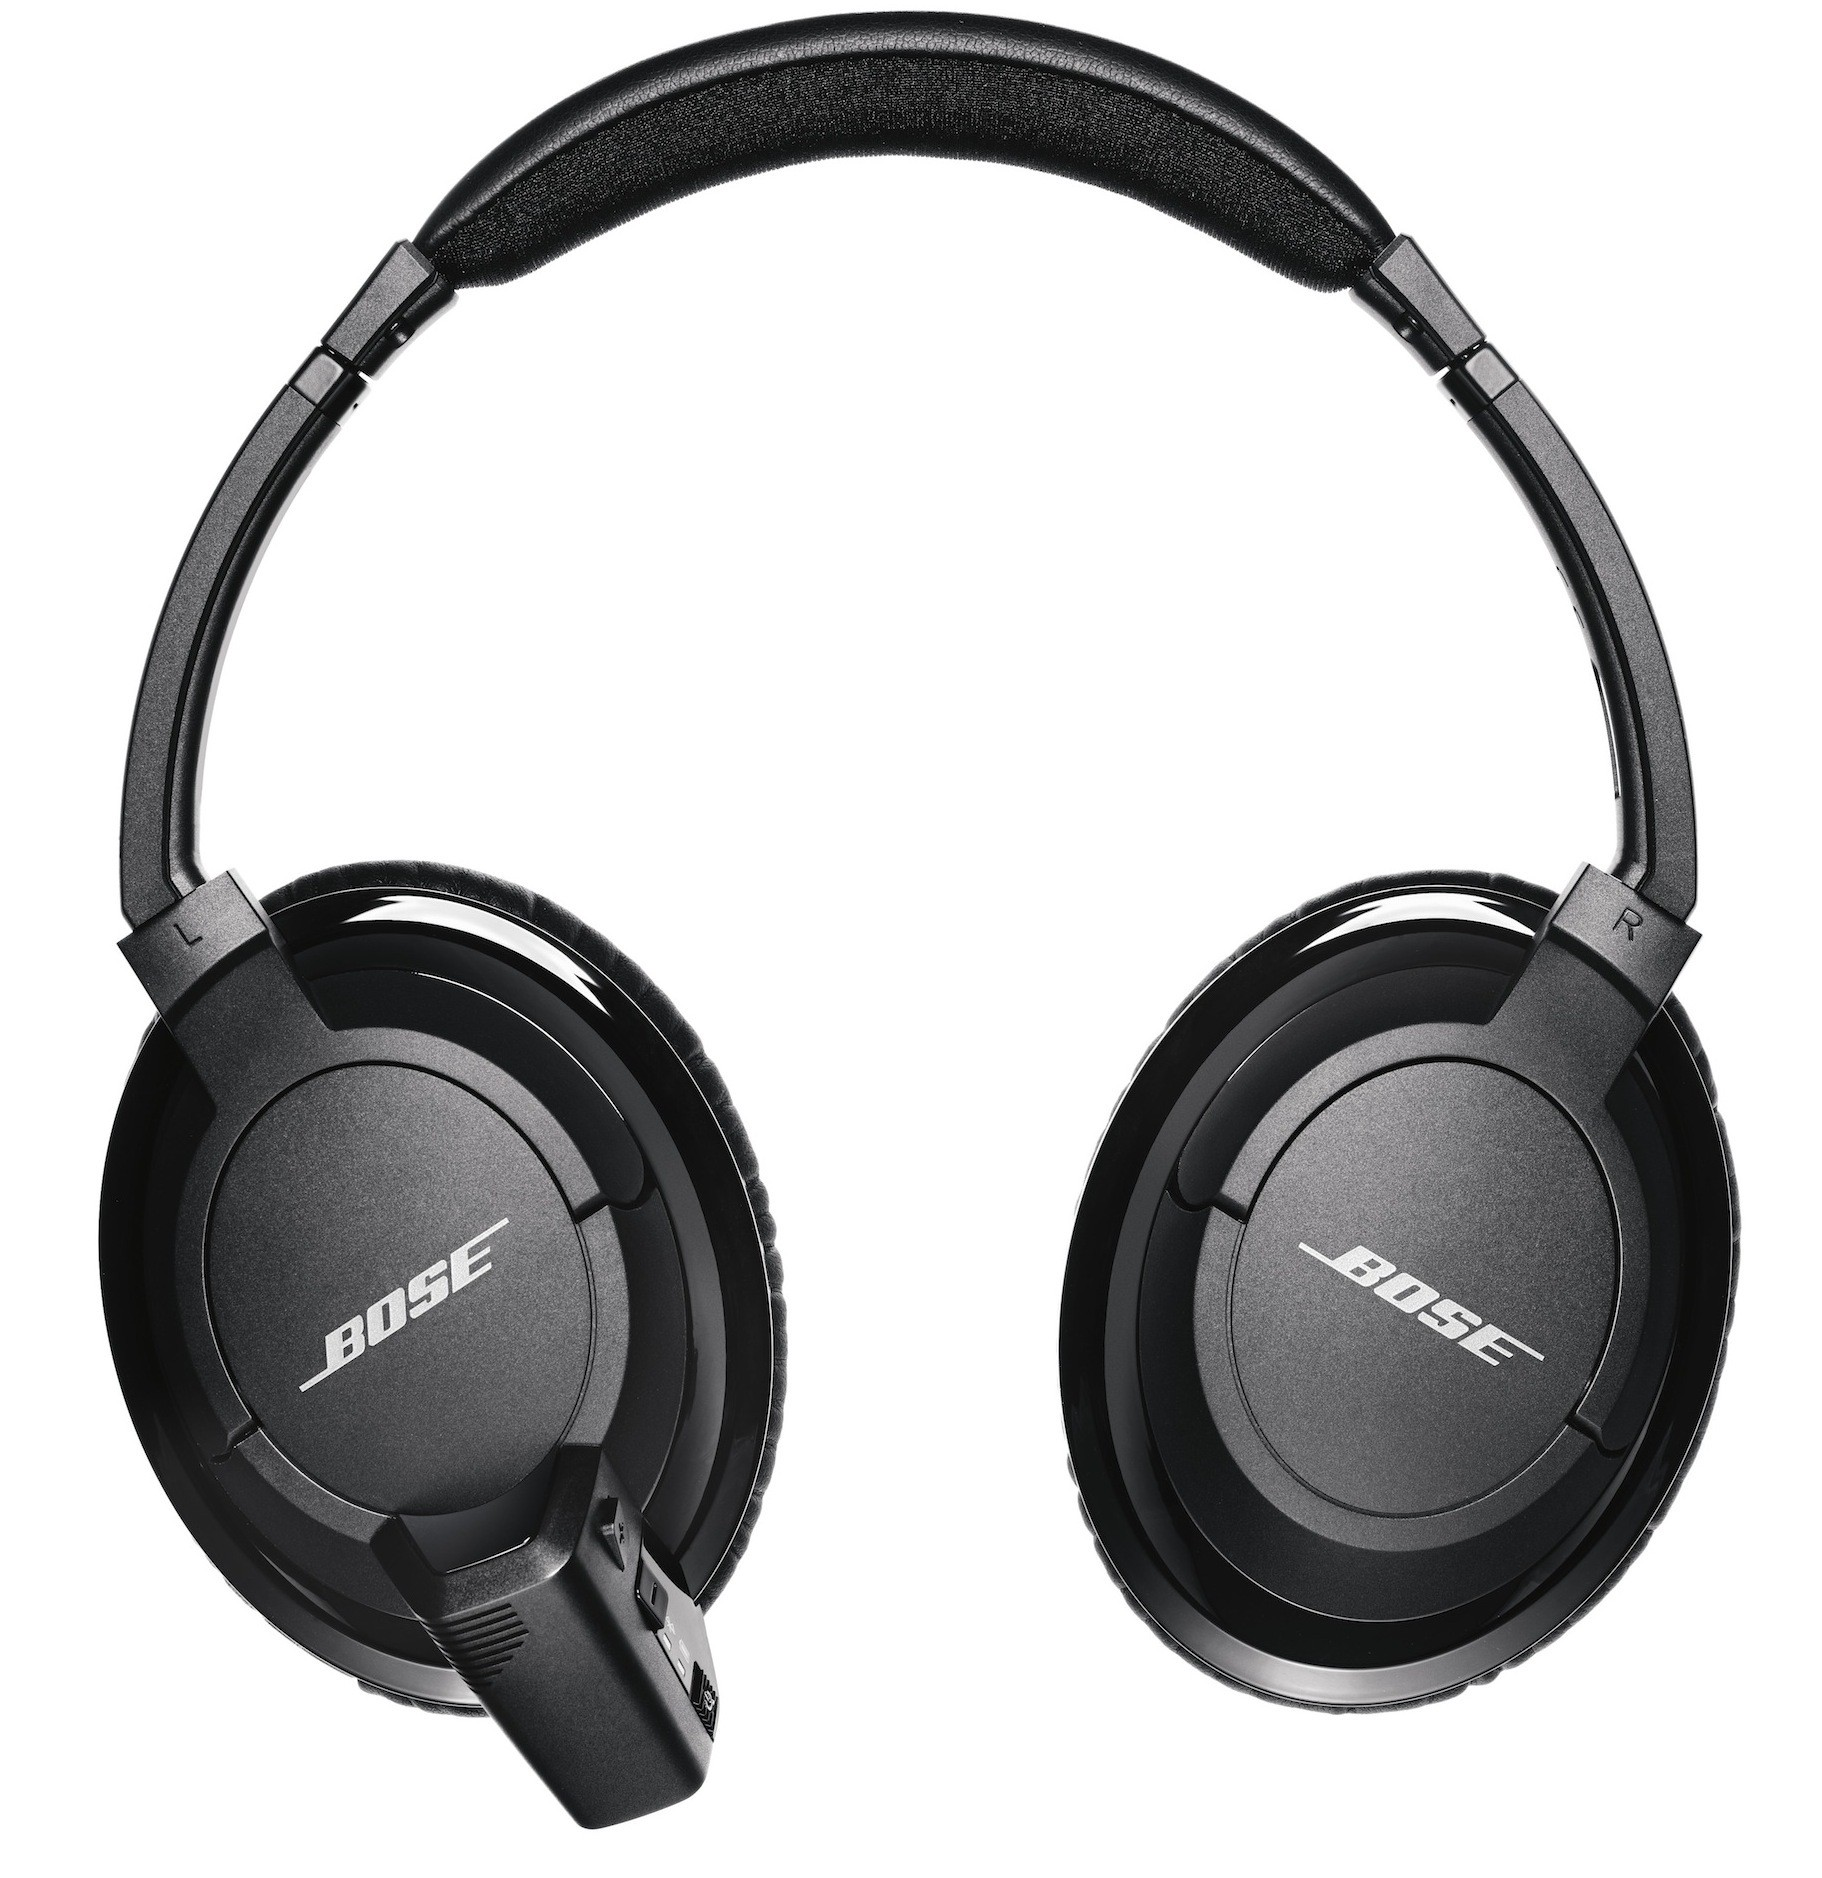 casque audio sans fil bose bose quietcomfort25 pas cher. Black Bedroom Furniture Sets. Home Design Ideas